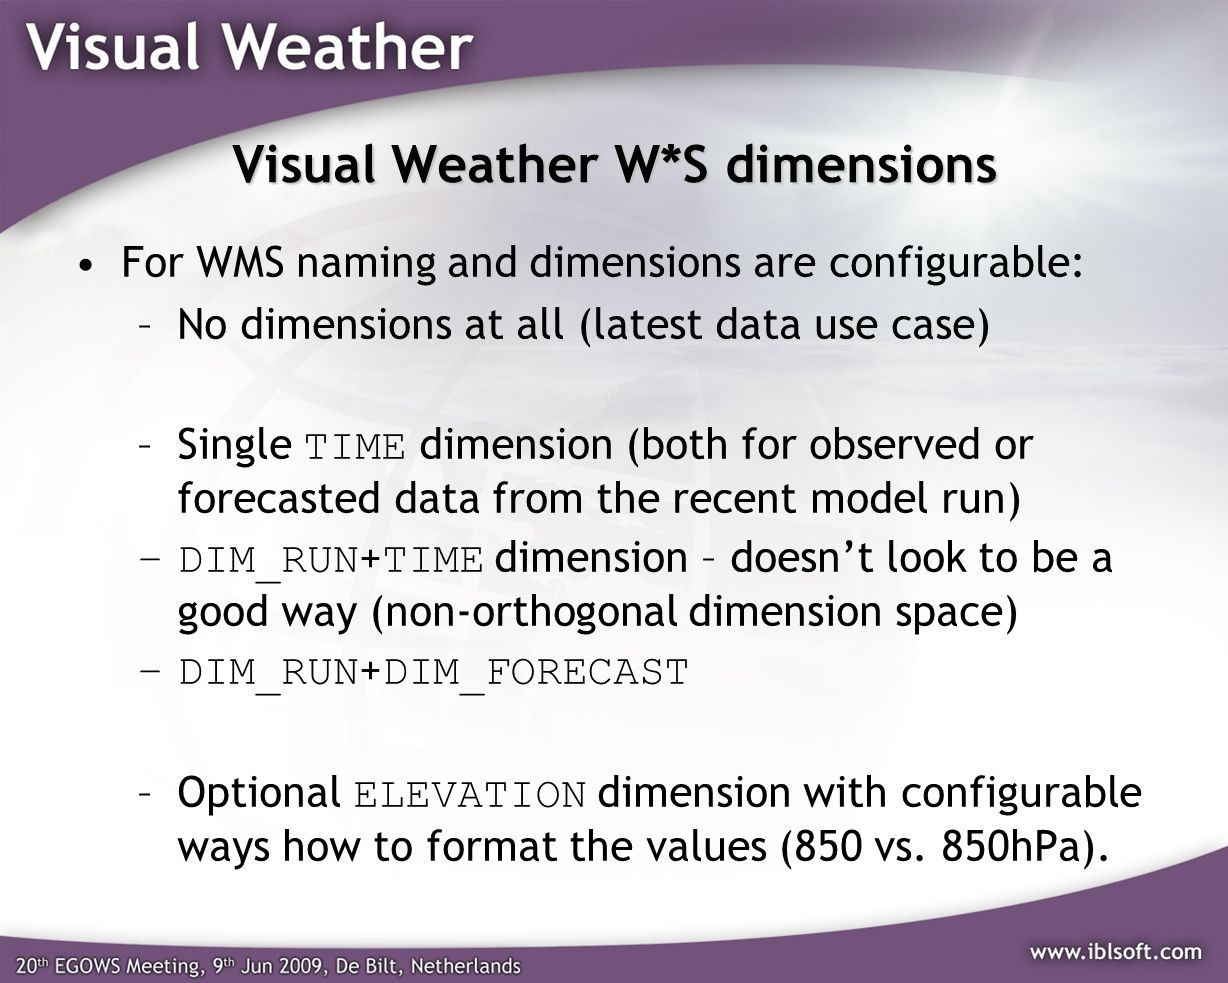 Visual Weather W*S dimensions For WMS naming and dimensions are configurable: –No dimensions at all (latest data use case) –Single TIME dimension (both for observed or forecasted data from the recent model run) –DIM_RUN + TIME dimension – doesnt look to be a good way (non-orthogonal dimension space) –DIM_RUN + DIM_FORECAST –Optional ELEVATION dimension with configurable ways how to format the values (850 vs.